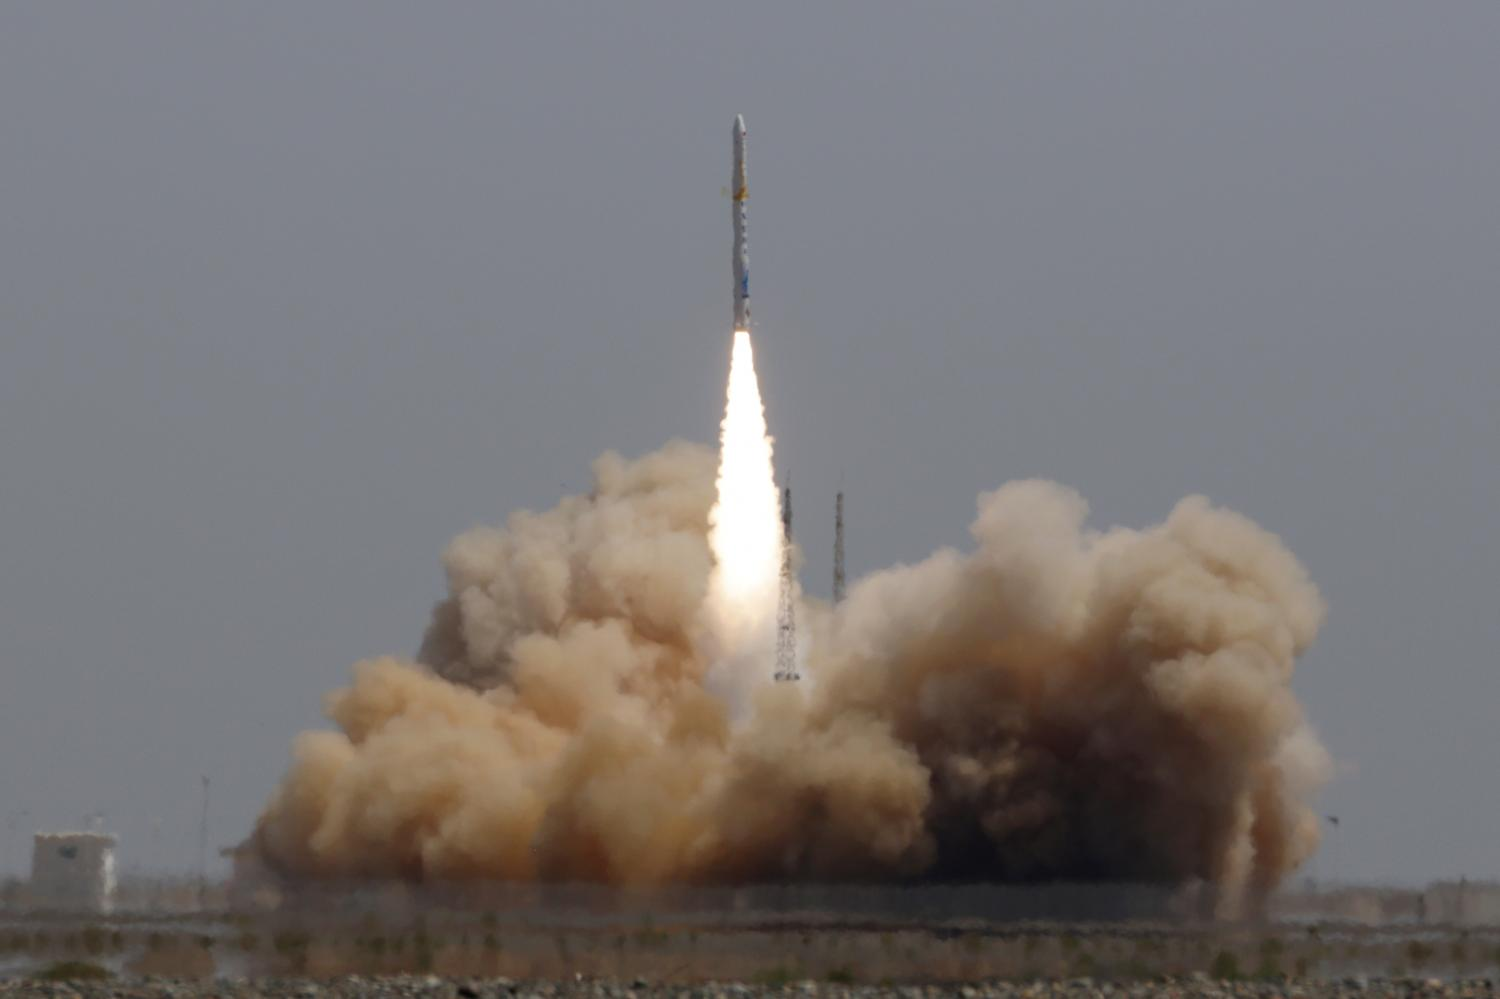 A Hyperbola-1 rocket developed by the Chinese company i-Space takes off from the Jiuquan Satellite Launch Centre in Gansu in July last year. Photo: China Stringer Network via Reuters